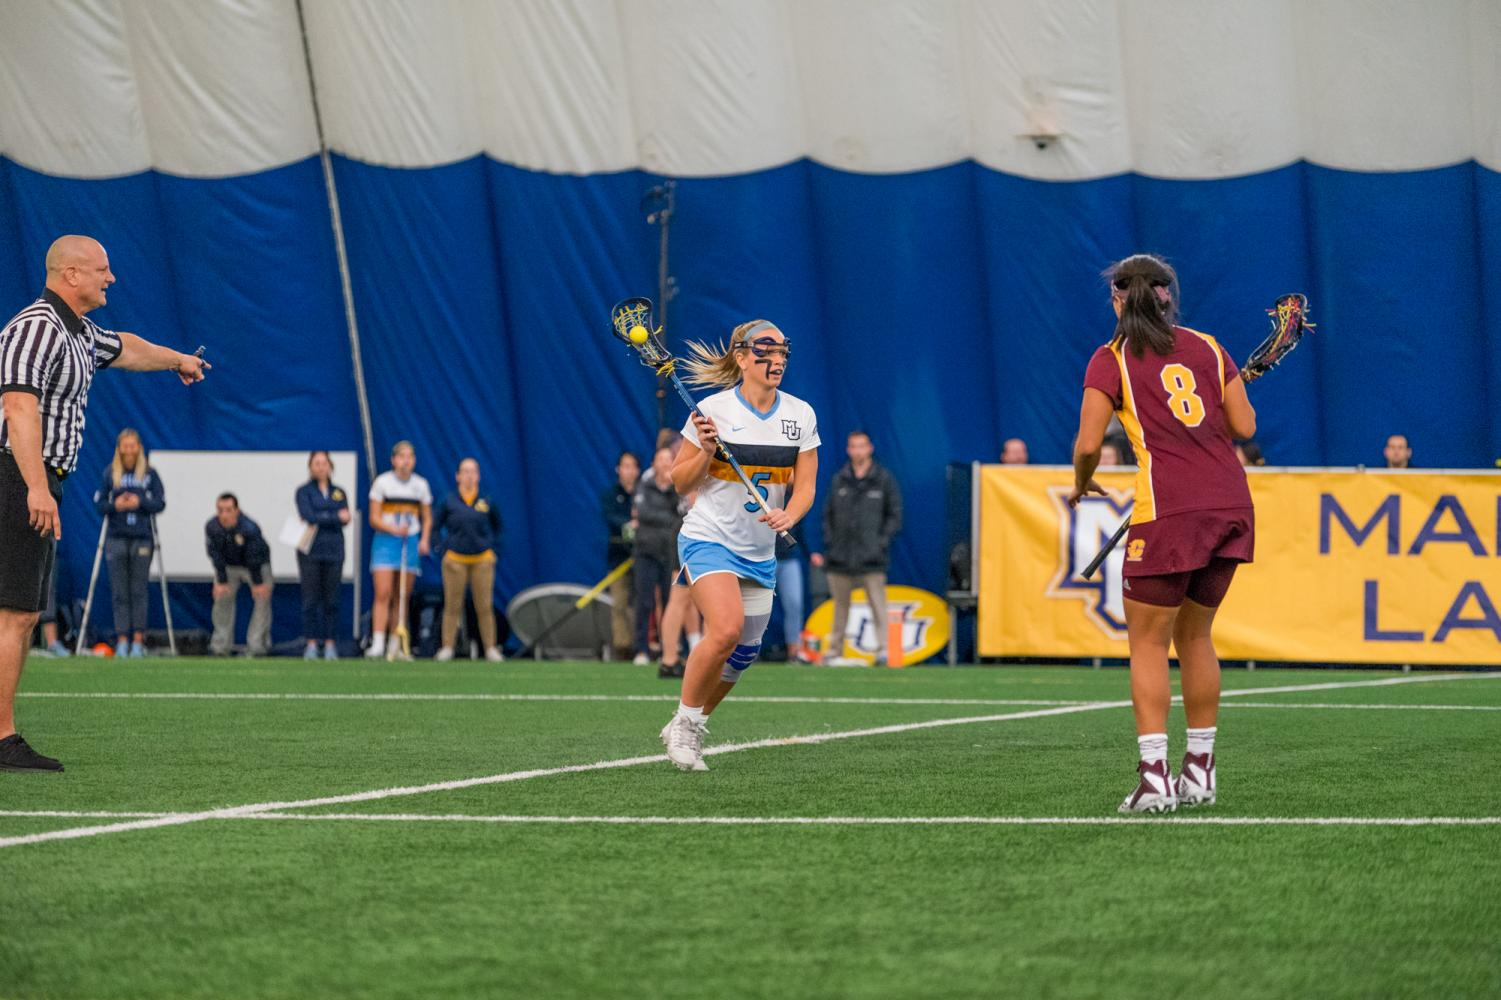 Lindsey Willcocks (right) brings up the ball against Central Michigan. The Golden Eagles went 2-0 this weekend.